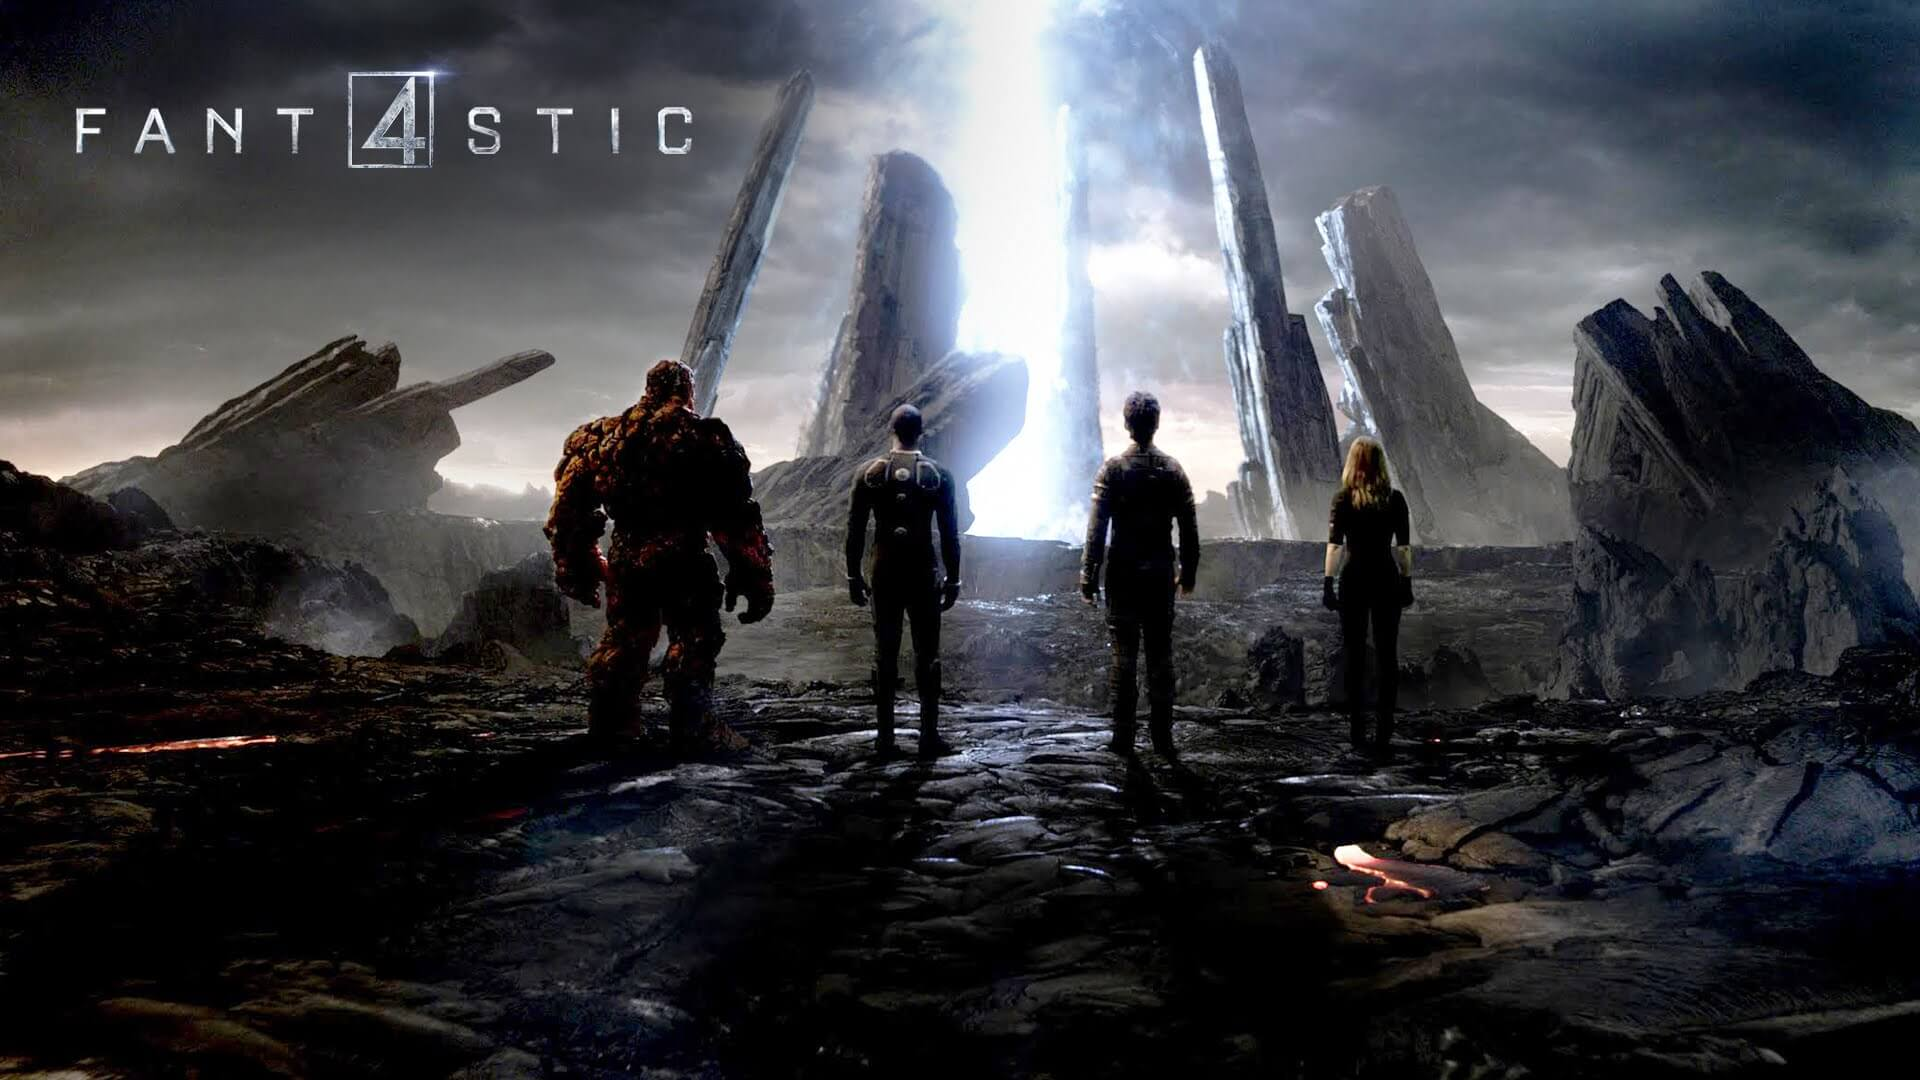 Fantastic Four Trailer #2: Meet the Team!